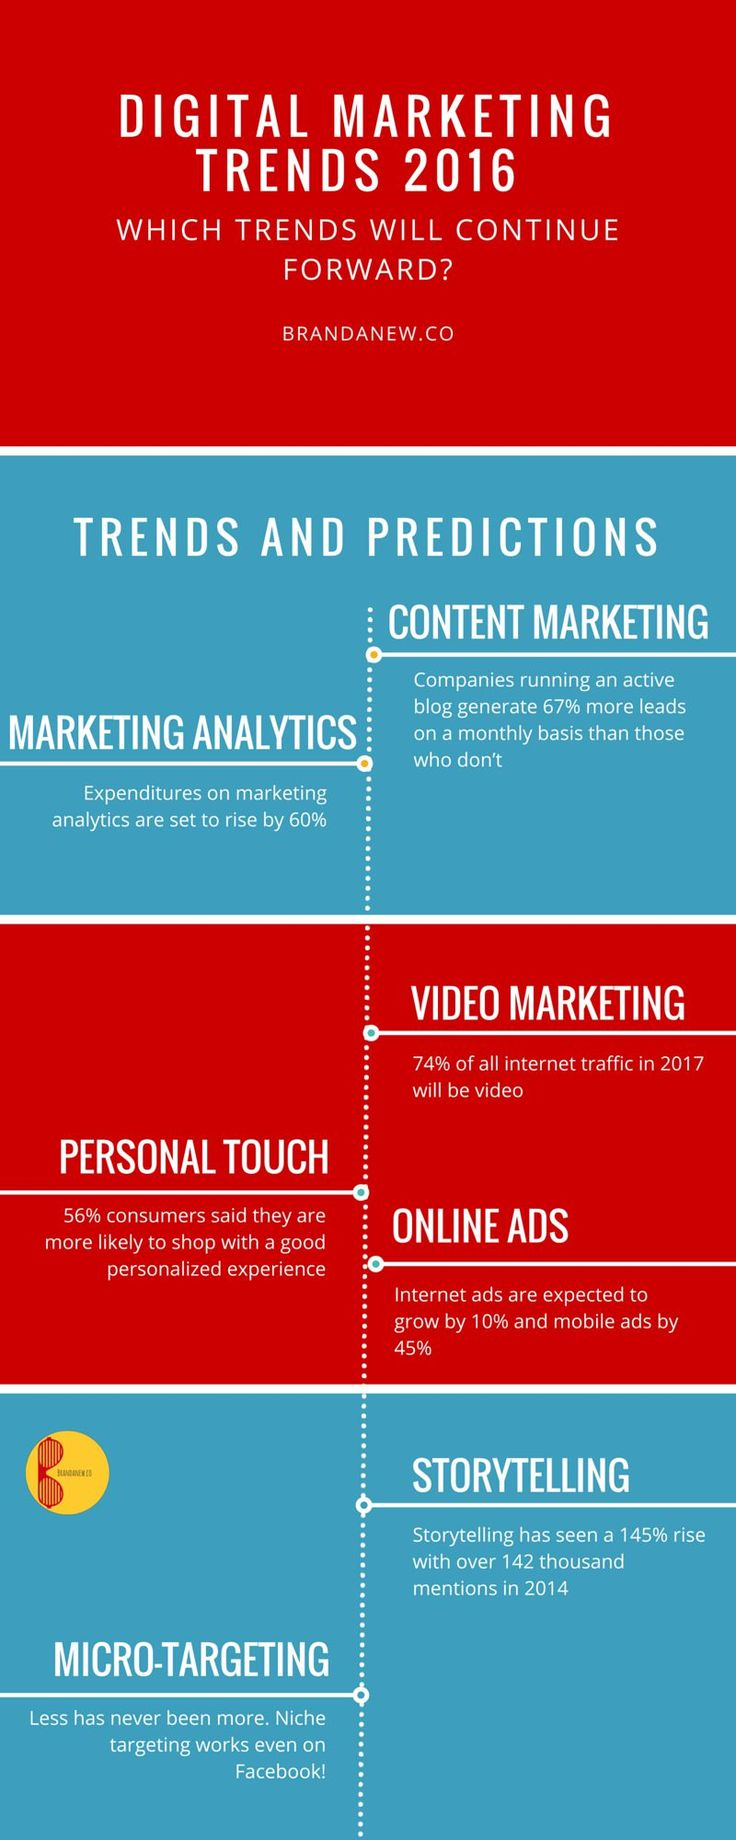 Digital marketing trends of 2016